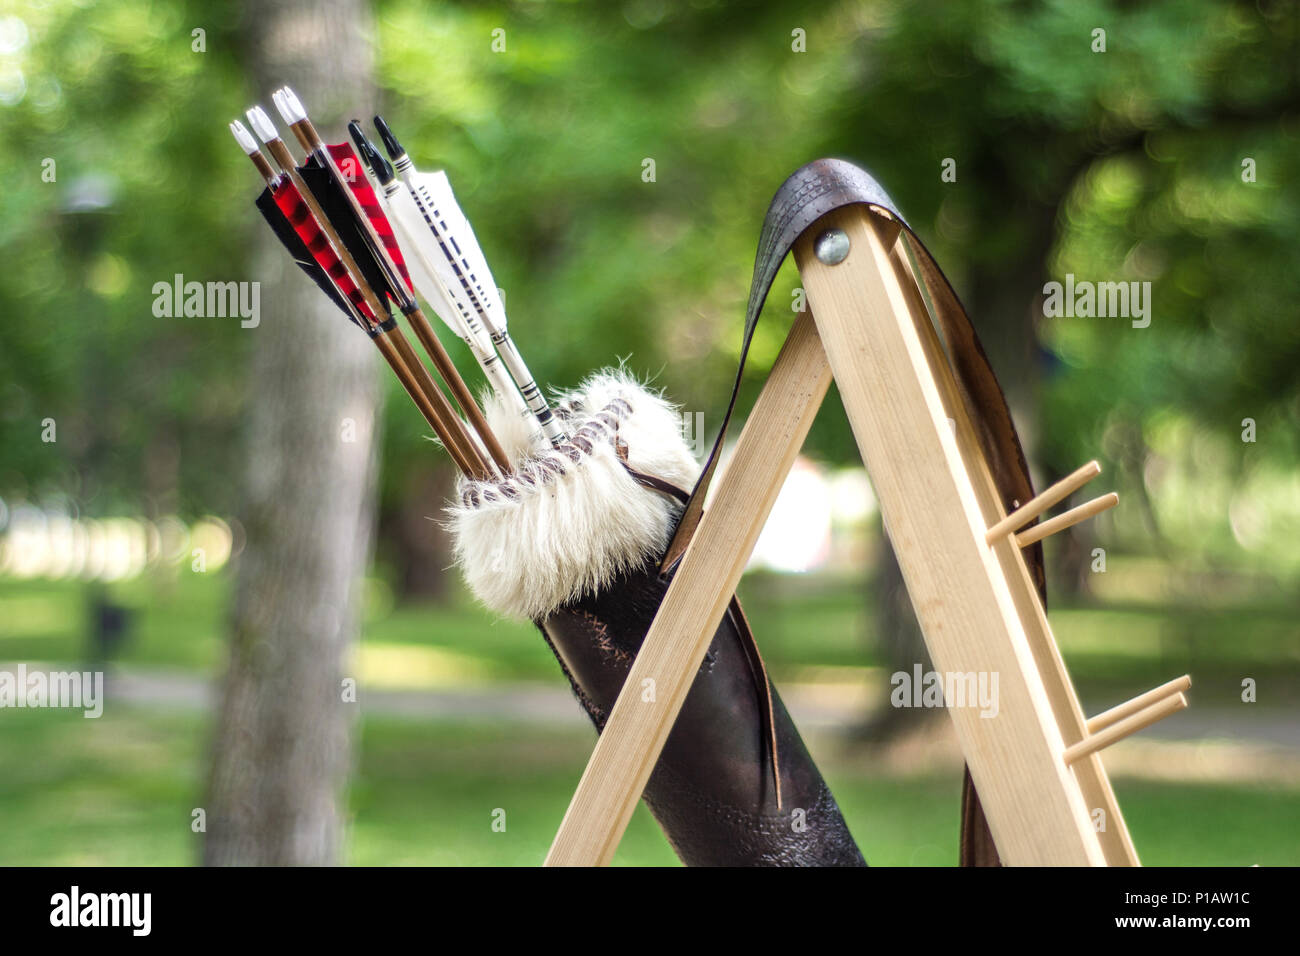 Medieval Set Of Old Wooden Arrows In Leather Case Hanging On Stand Green Forest Blurred Background Close Up Selective Focus Stock Photo Alamy Thousands of free icons in the largest database of free vector icons! alamy